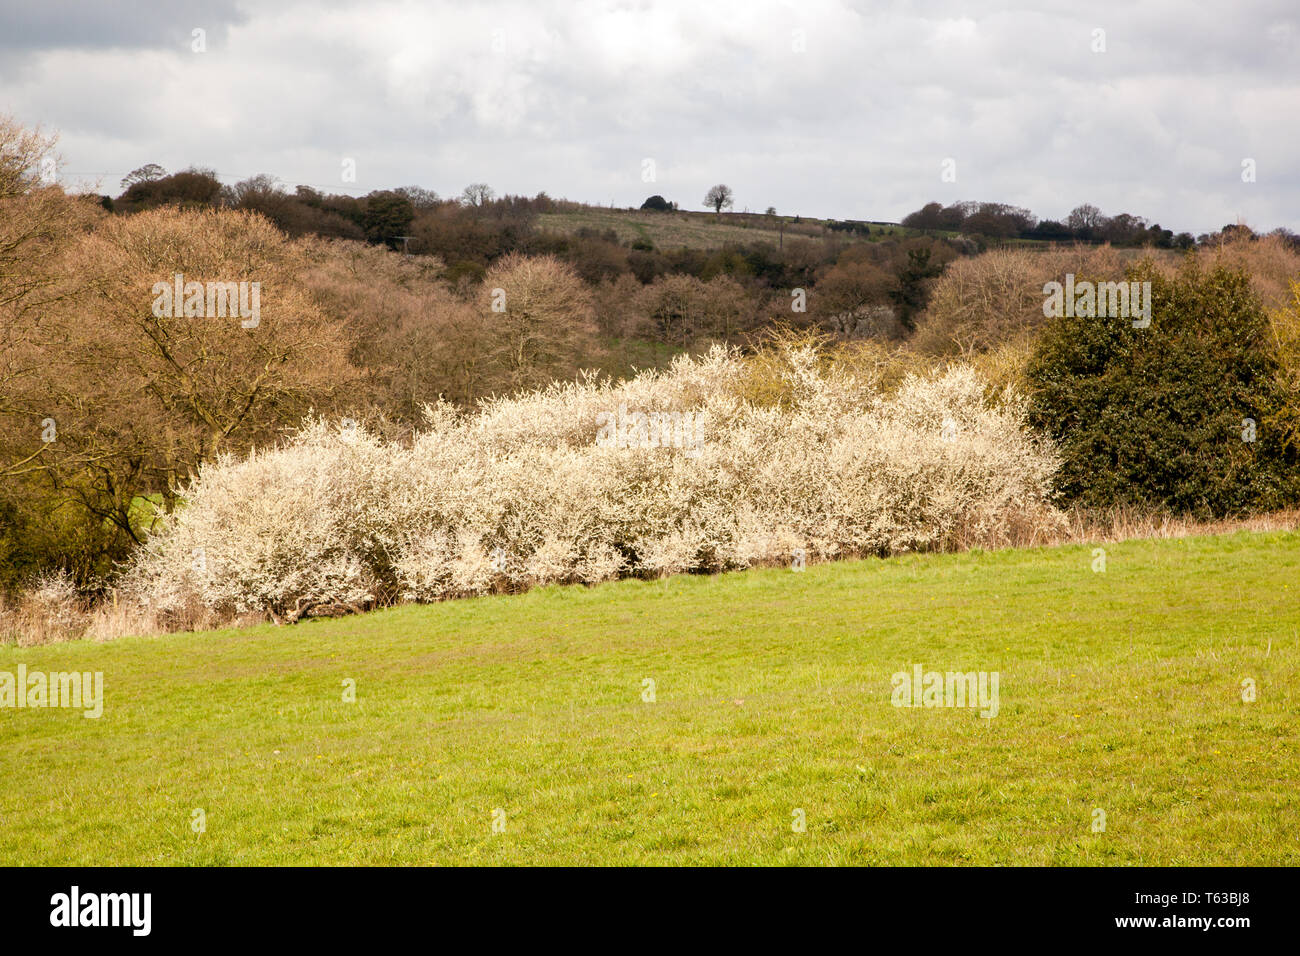 Blackthorne thicket  Prunus spinosa a native deciduous tree of the English countryside also known as Sloe Stock Photo